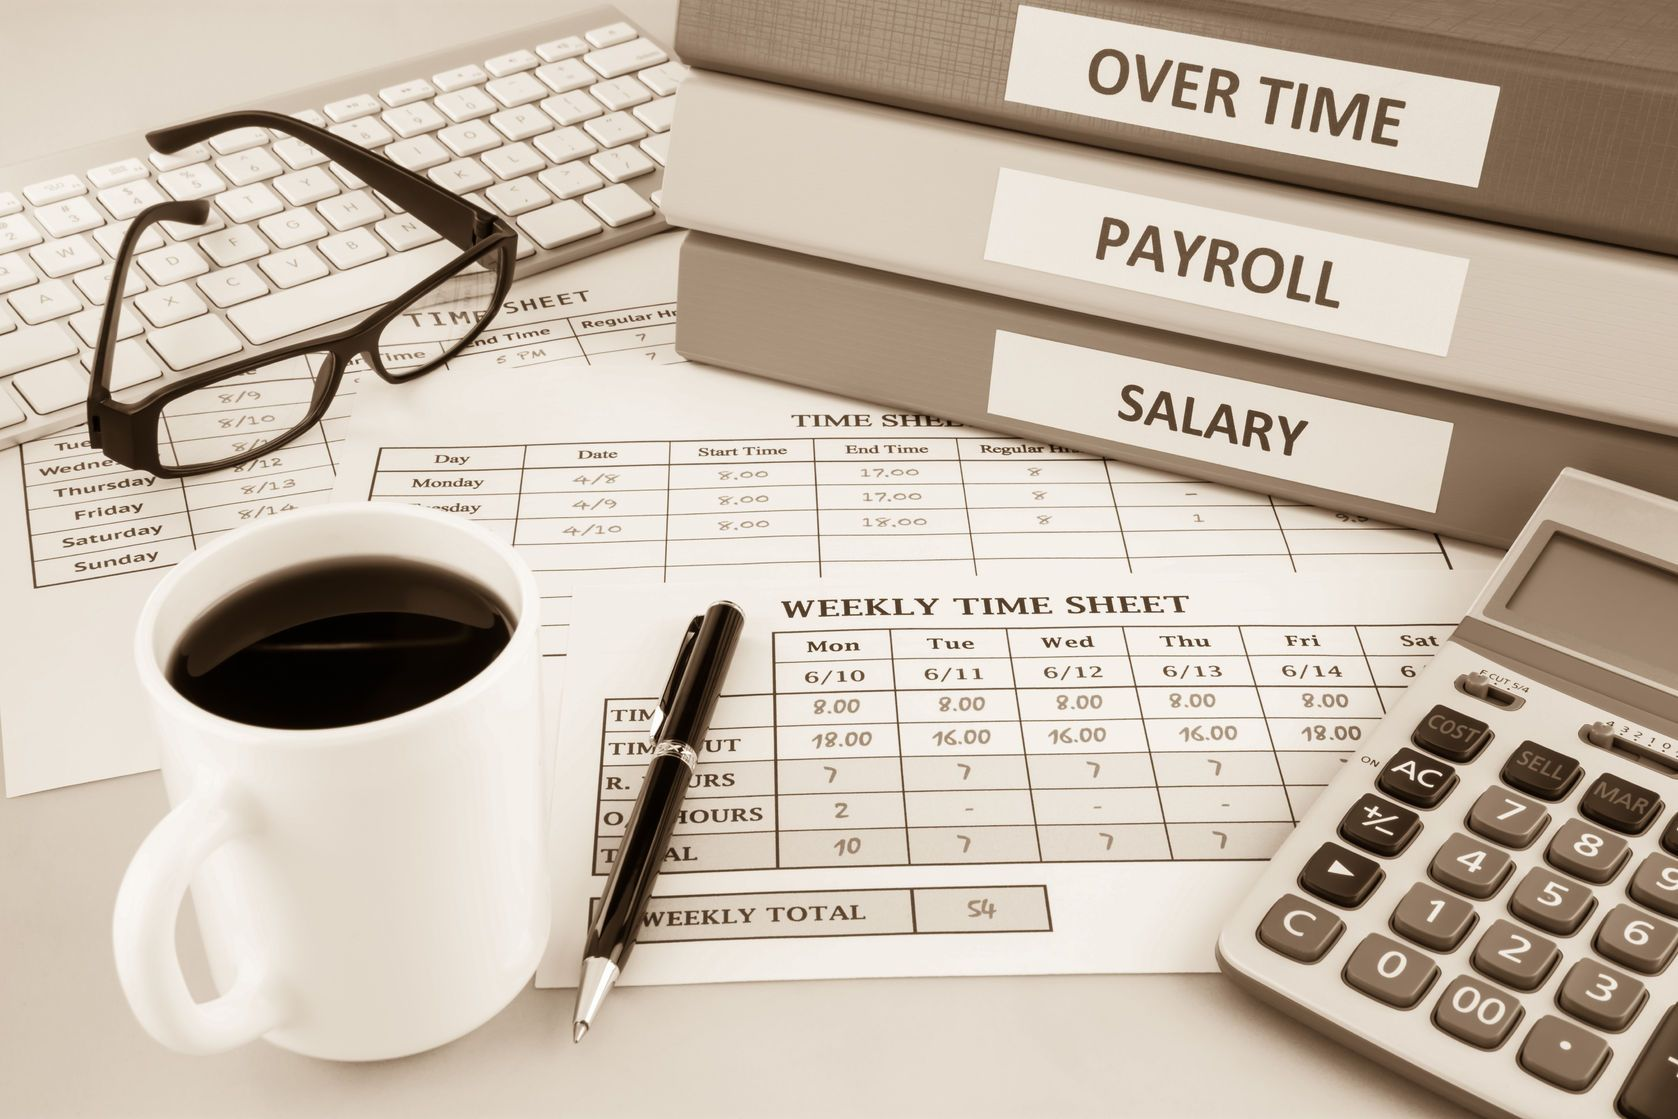 Cape Cod Payroll Companies Firm company service services payroll companies Payroll Companies About Us Payroll Services for Small Business Cape Cod Nantucket